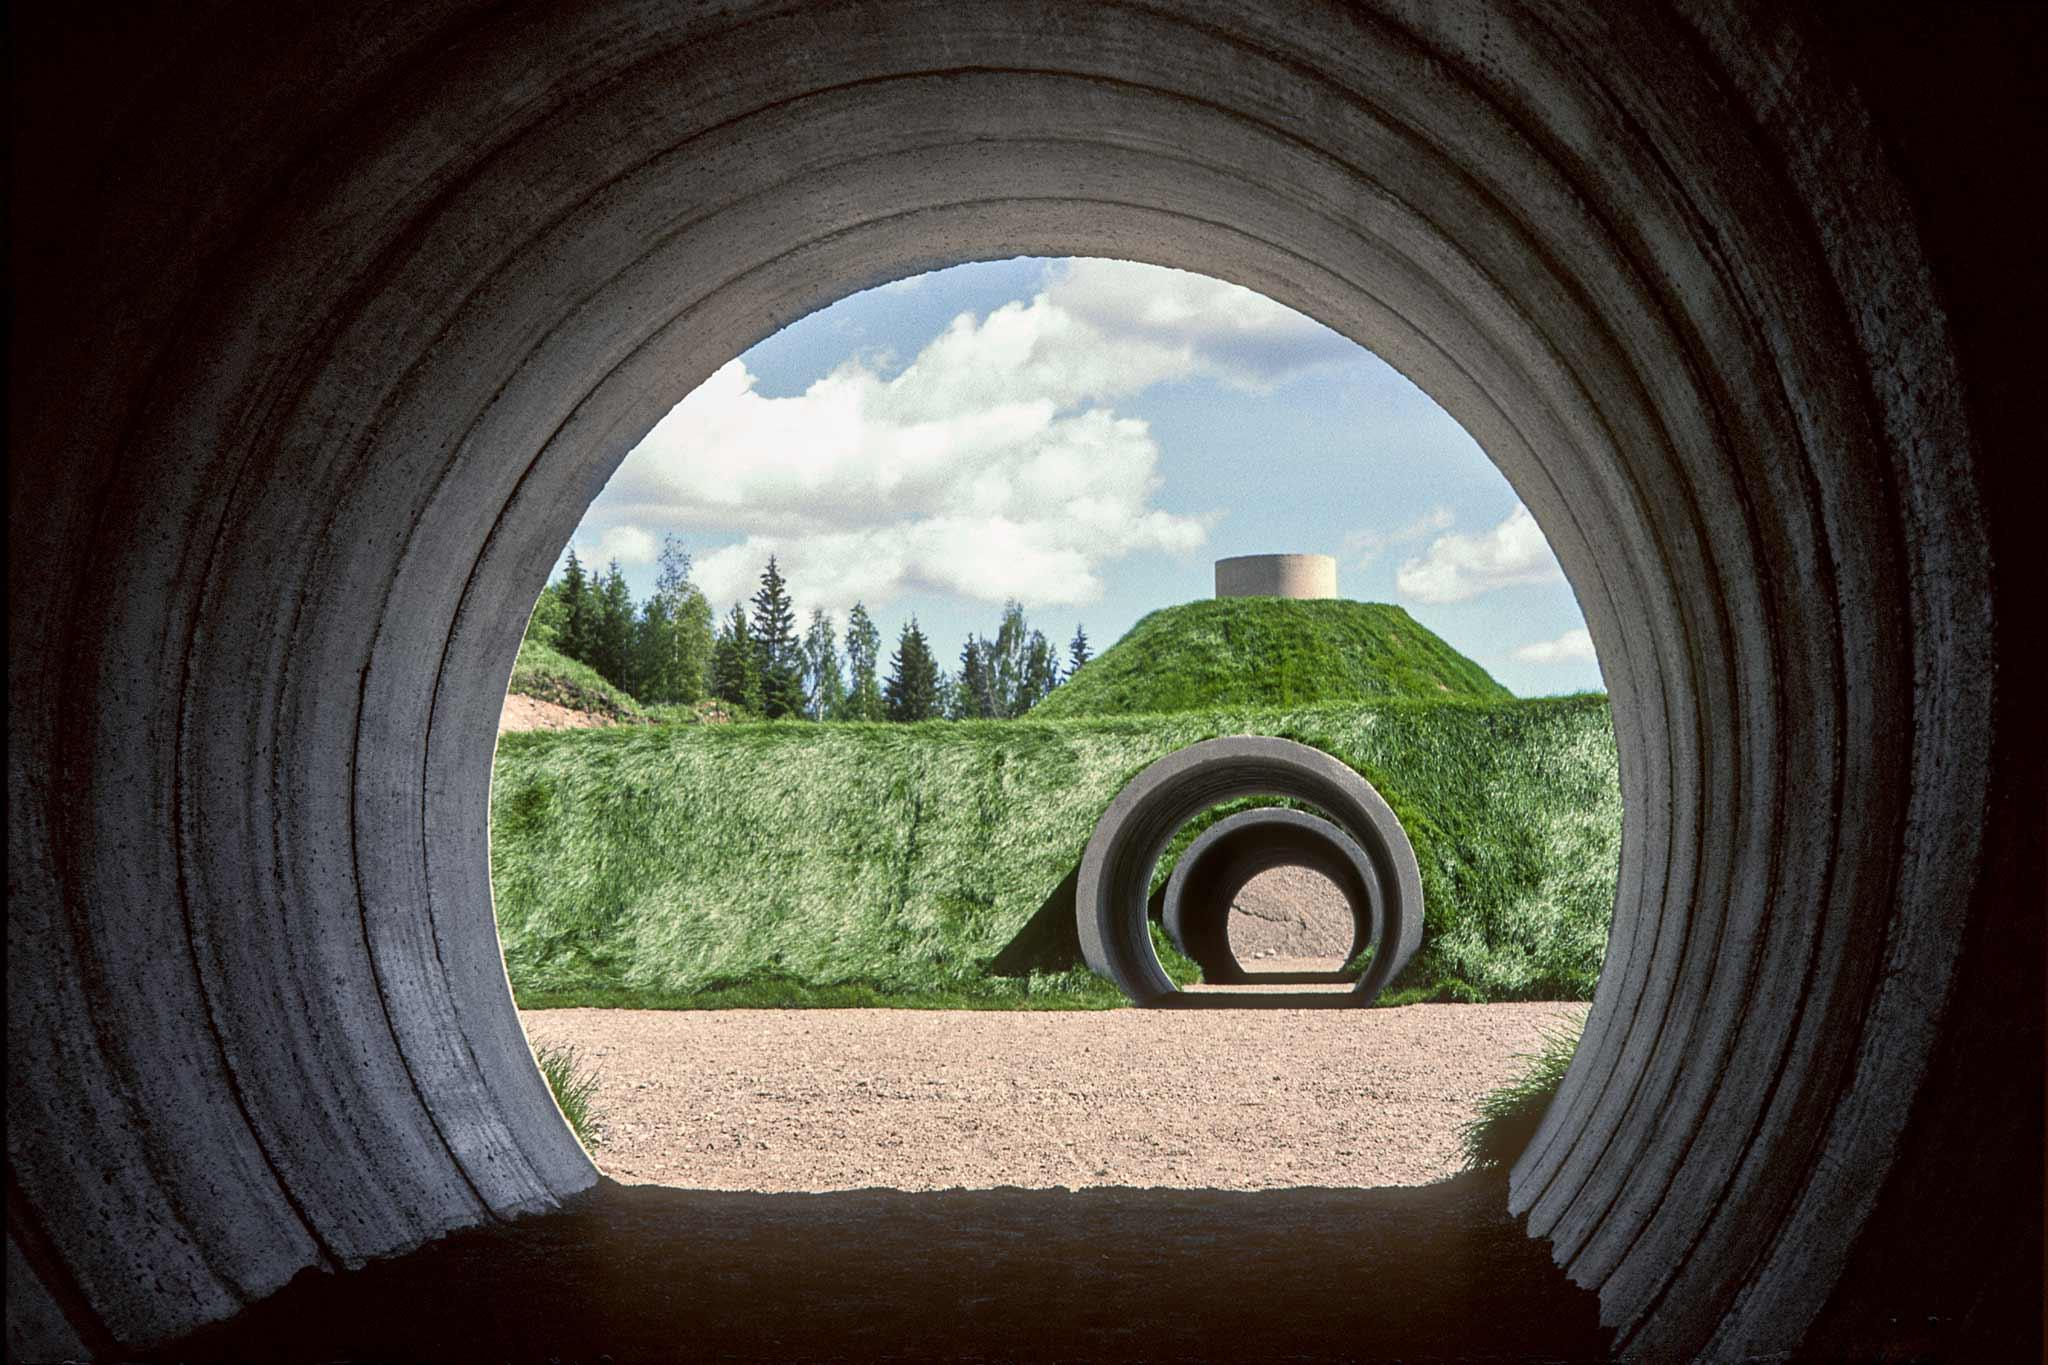 Interior view of a circular tunnel looking out onto a mound of earth with tunnels cutting through it.